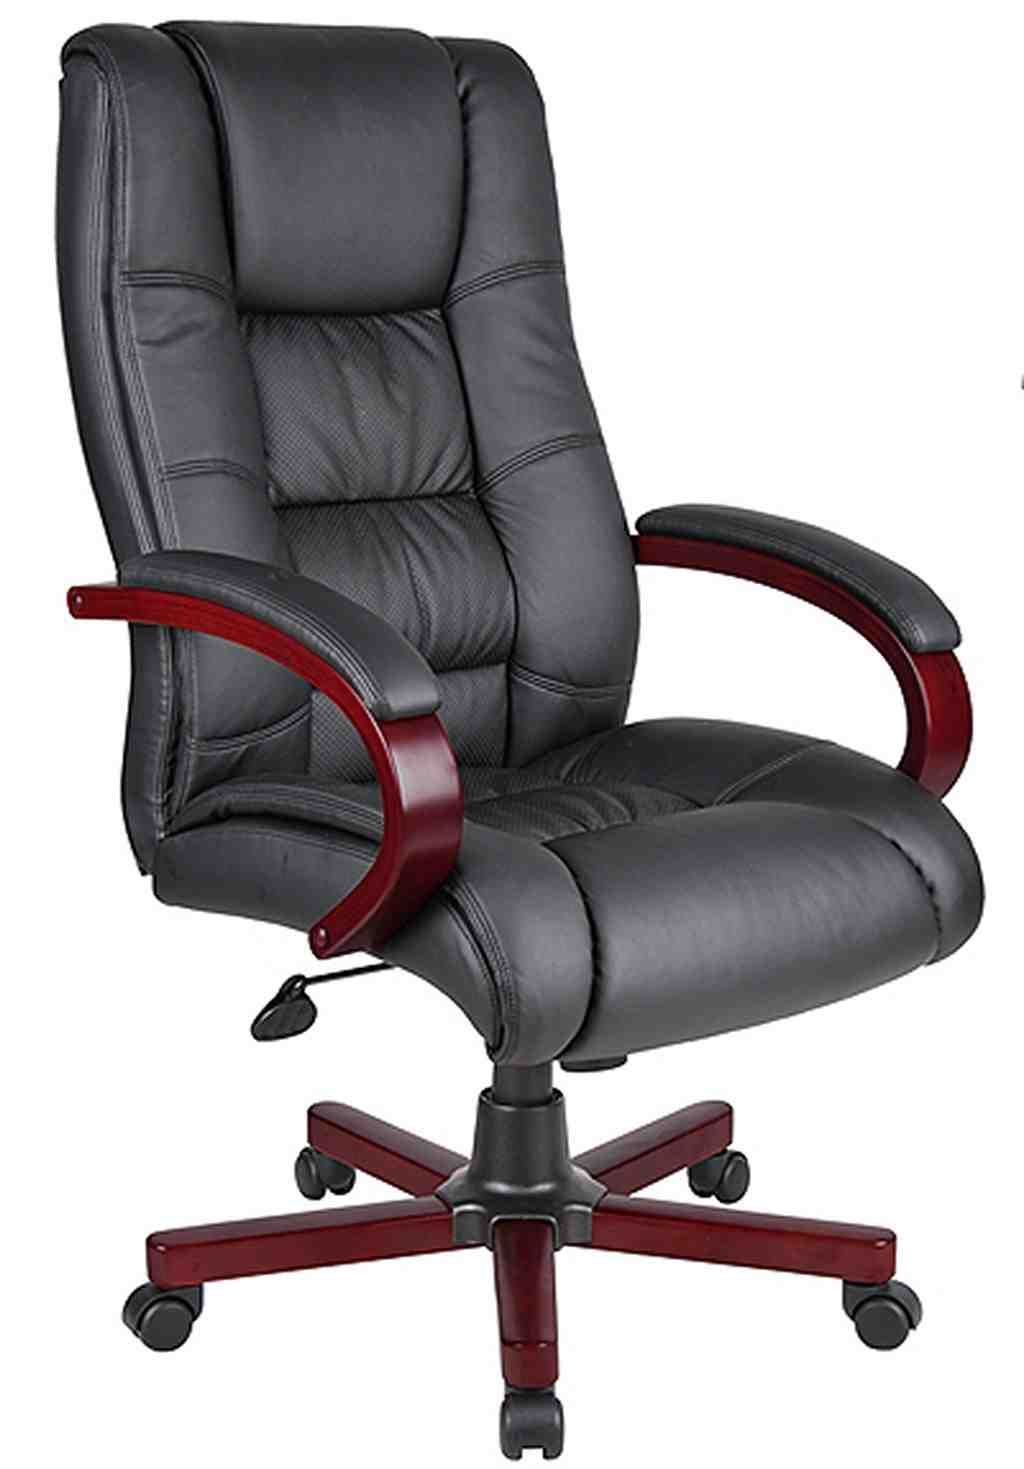 high back black leather executive office chair leather office